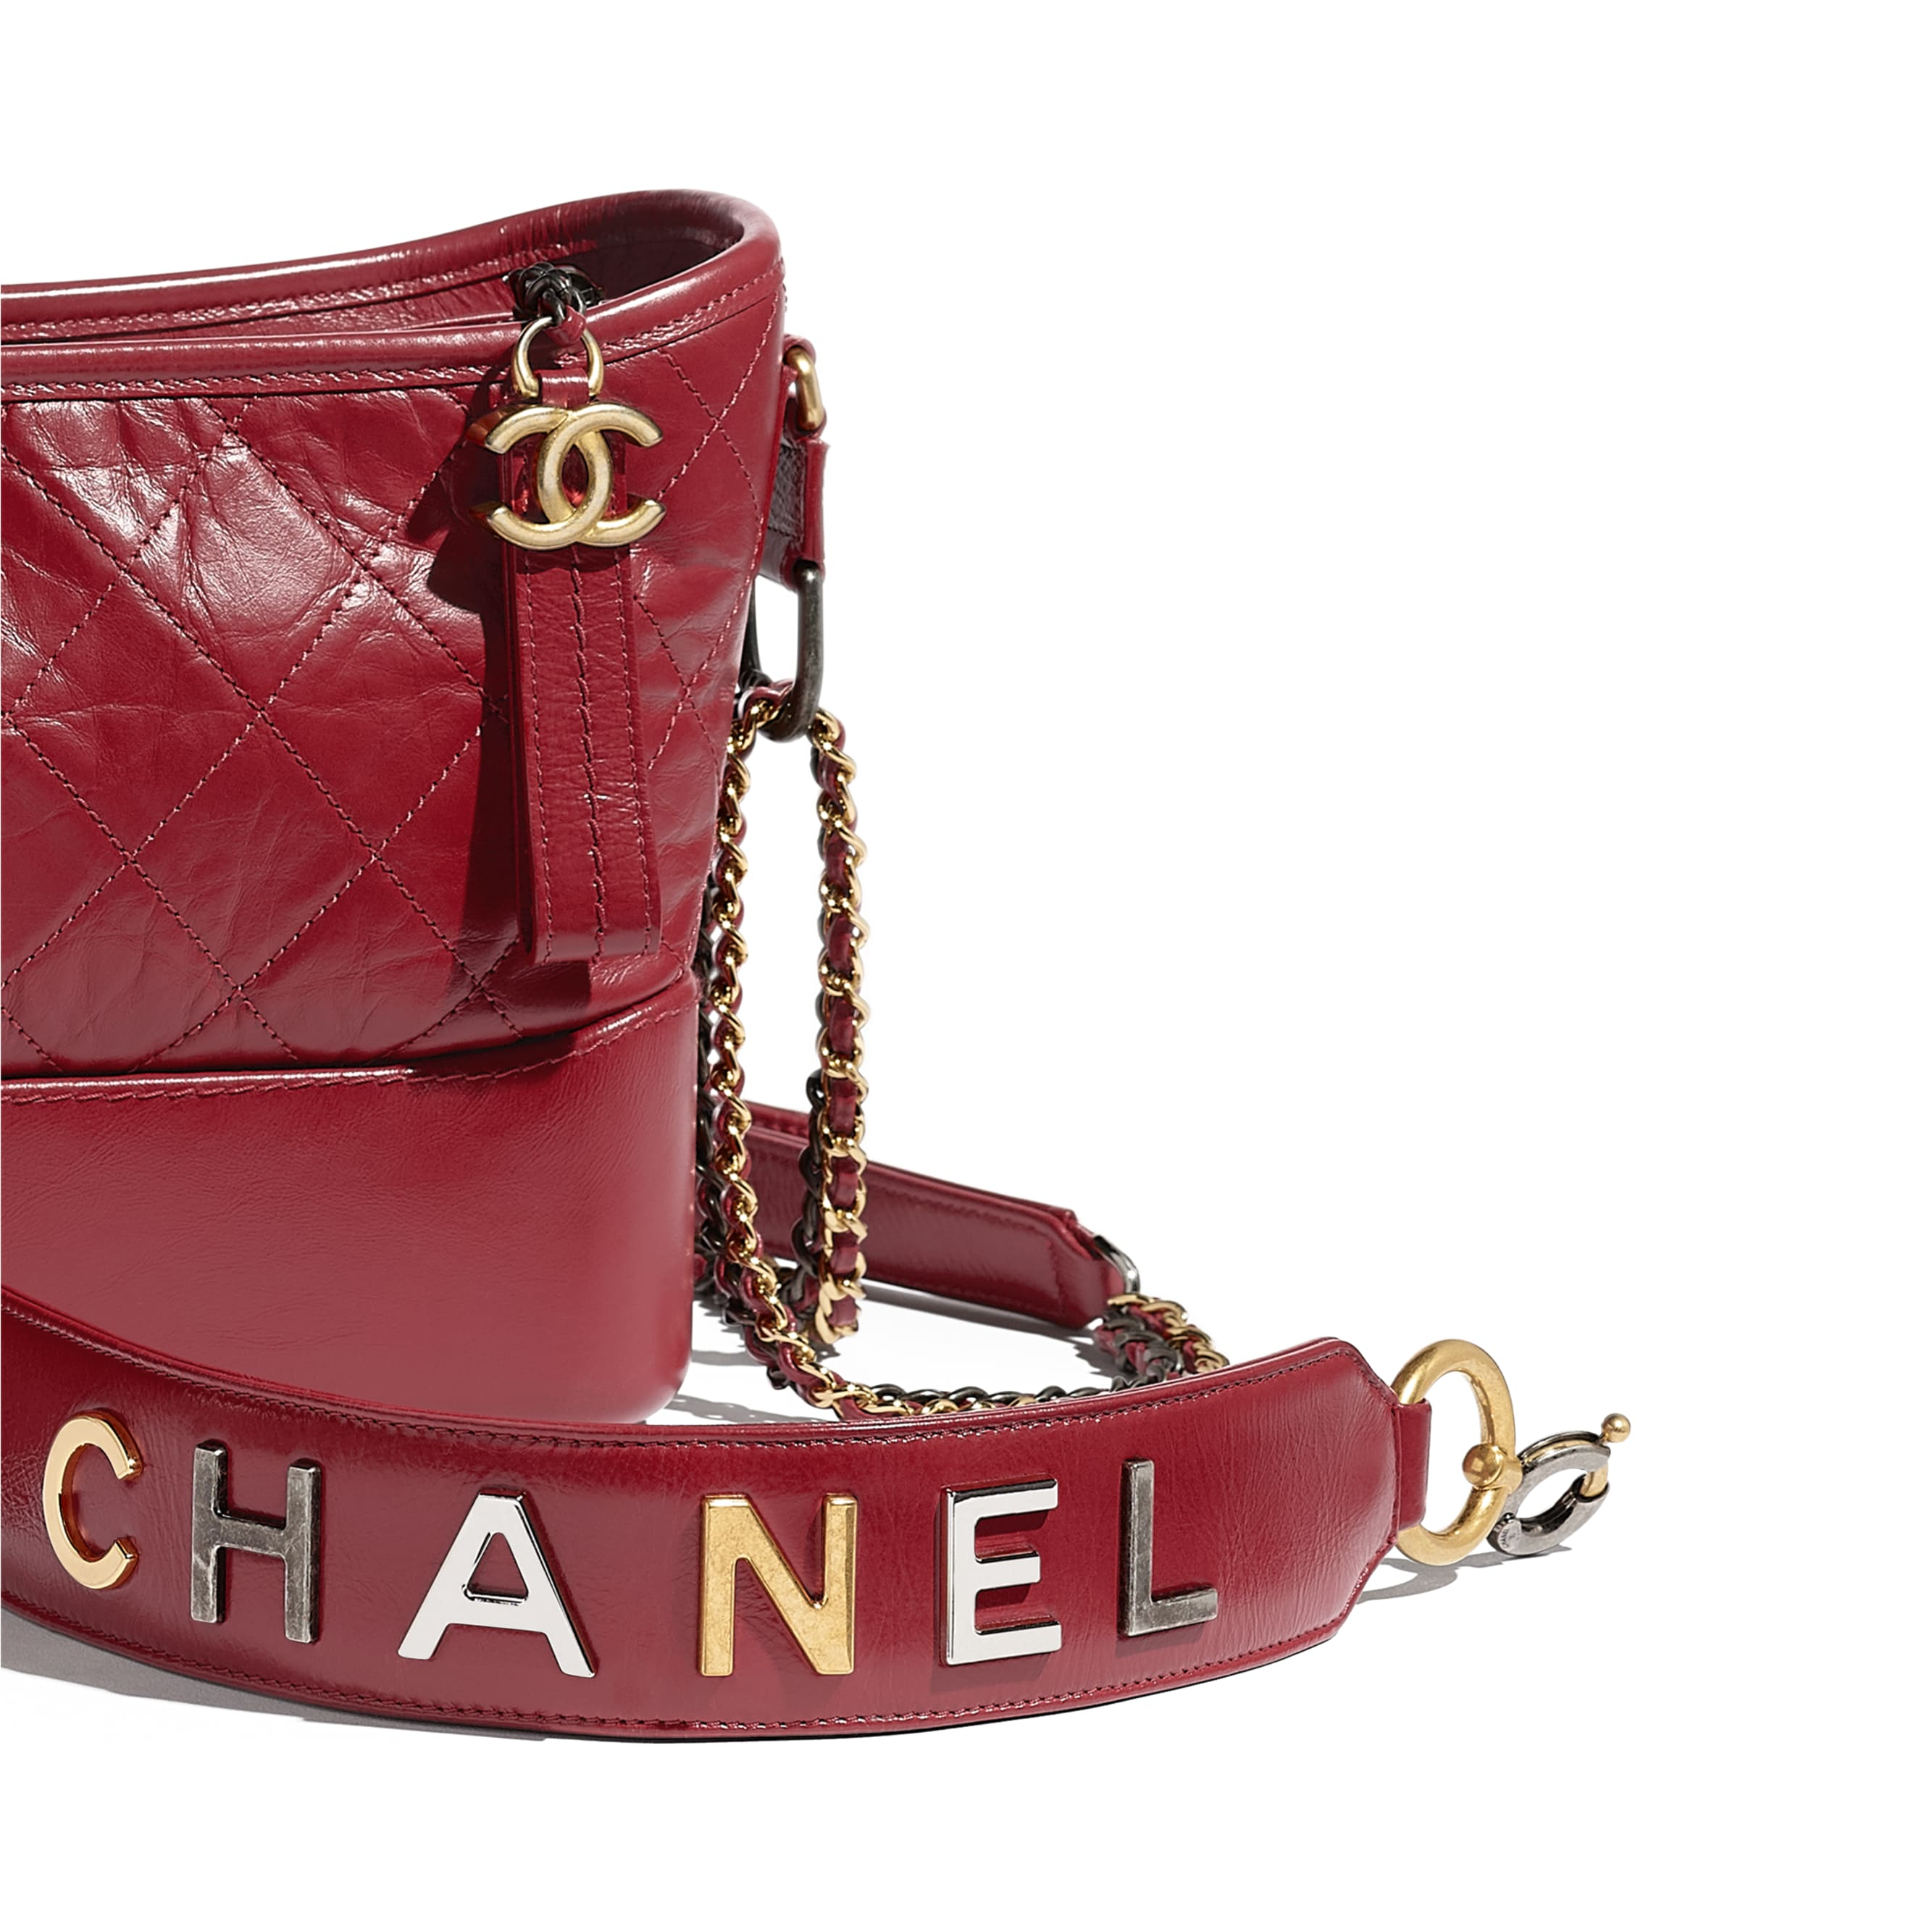 CHANEL'S GABRIELLE Hobo Handbag - Red - Aged Calfskin, Smooth Calfskin, Gold-Tone, Silver-Tone & Ruthenium-Finish Metal - CHANEL - Extra view - see standard sized version